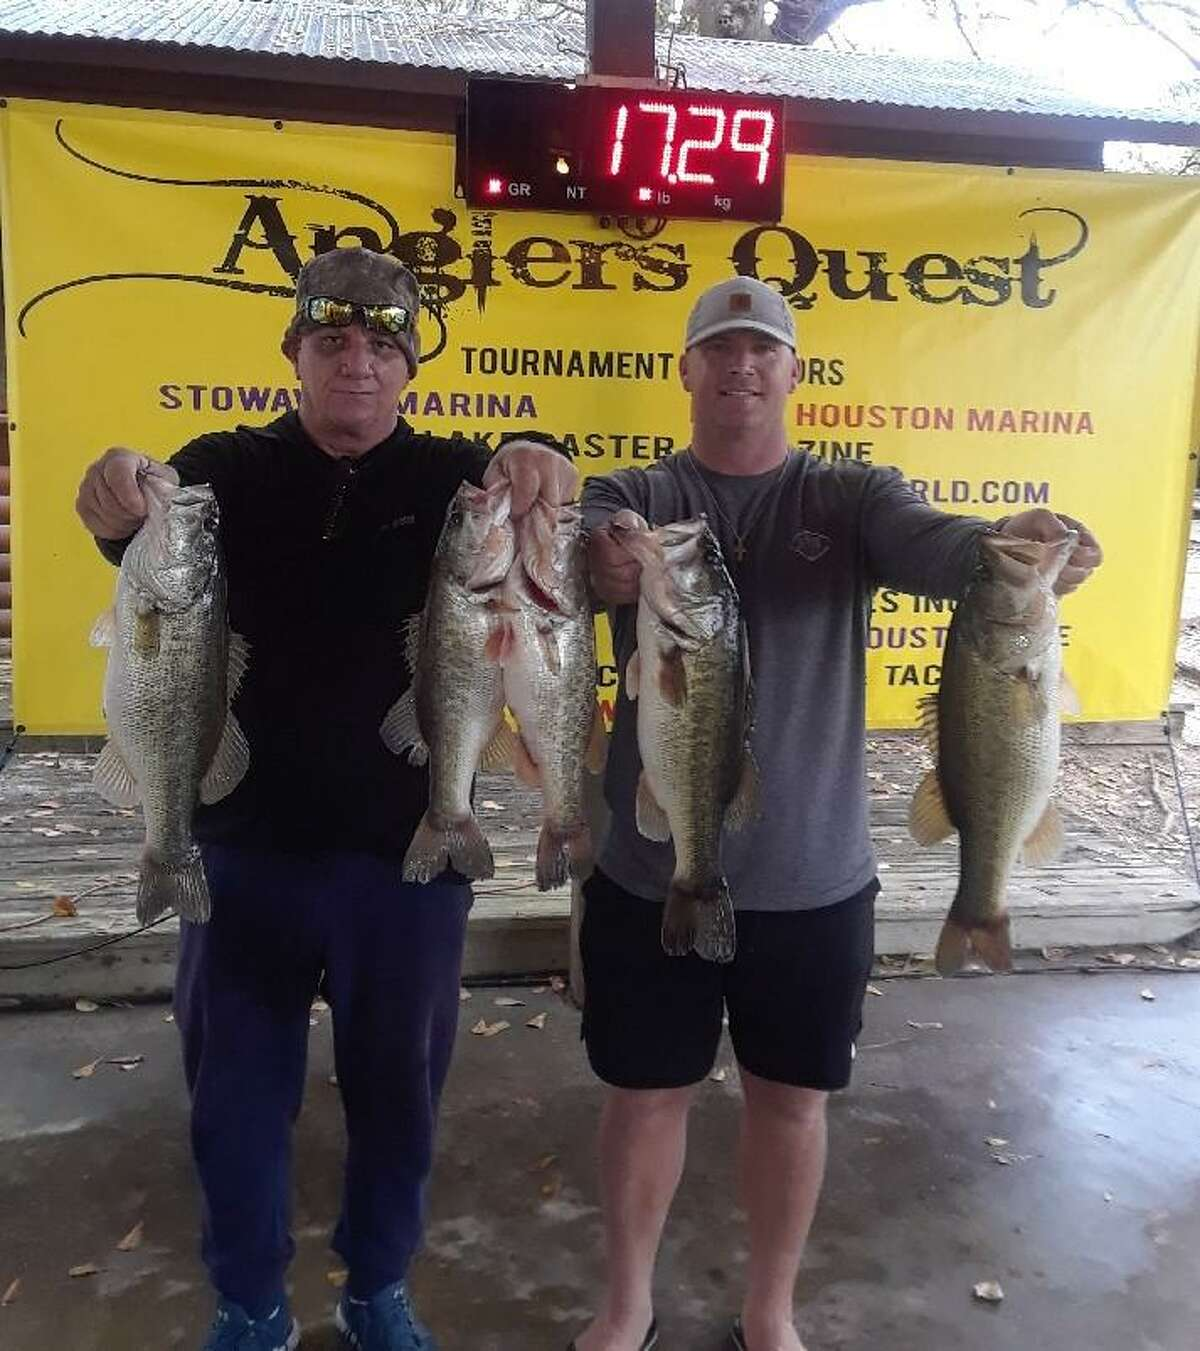 Bobby Shearfield and Bob Shearfield claimed second place in the Anglers Quest Team Tournament #1 with a total weight of 17.29 pounds.